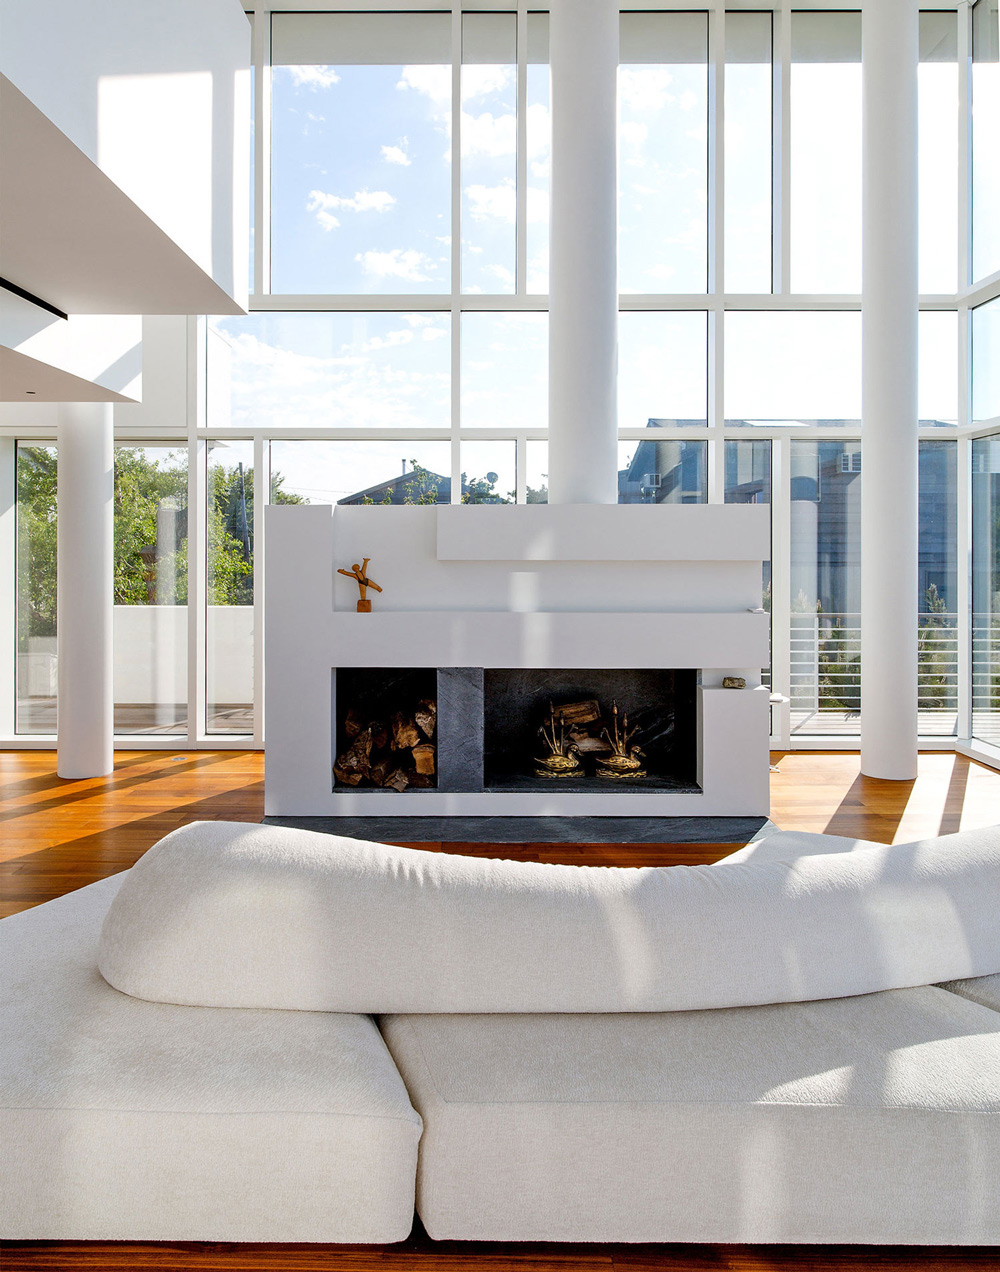 Contemporary Fireplace, Richard Meier's Fire Island House